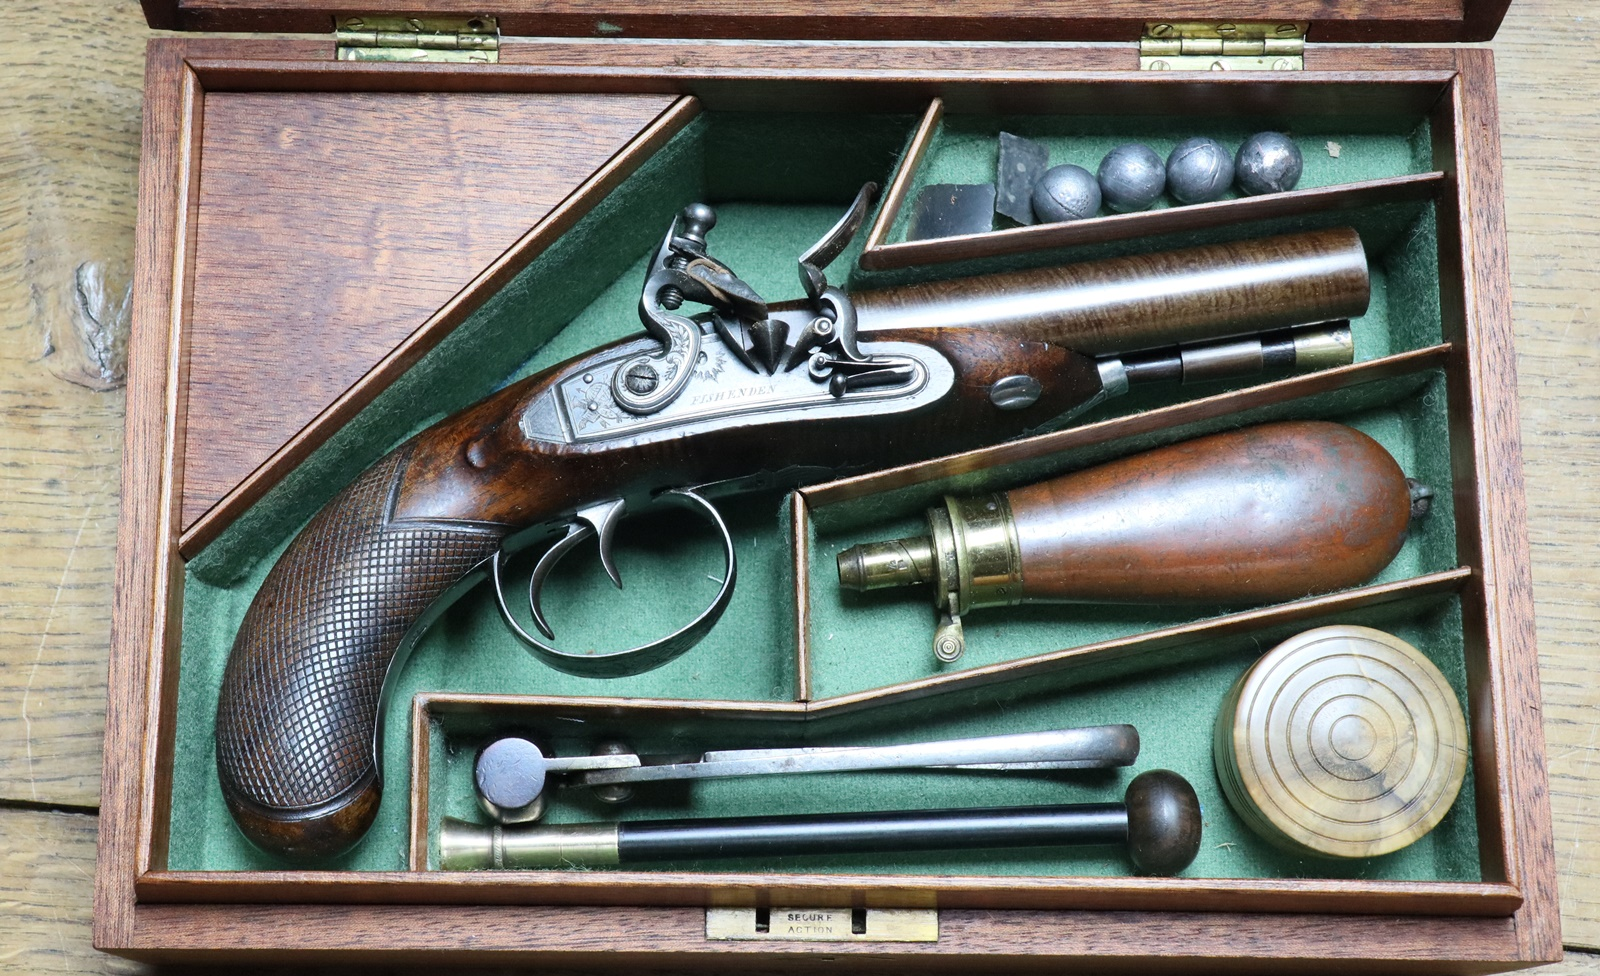 Uncategorized – Antique Firearms Restoration Blog